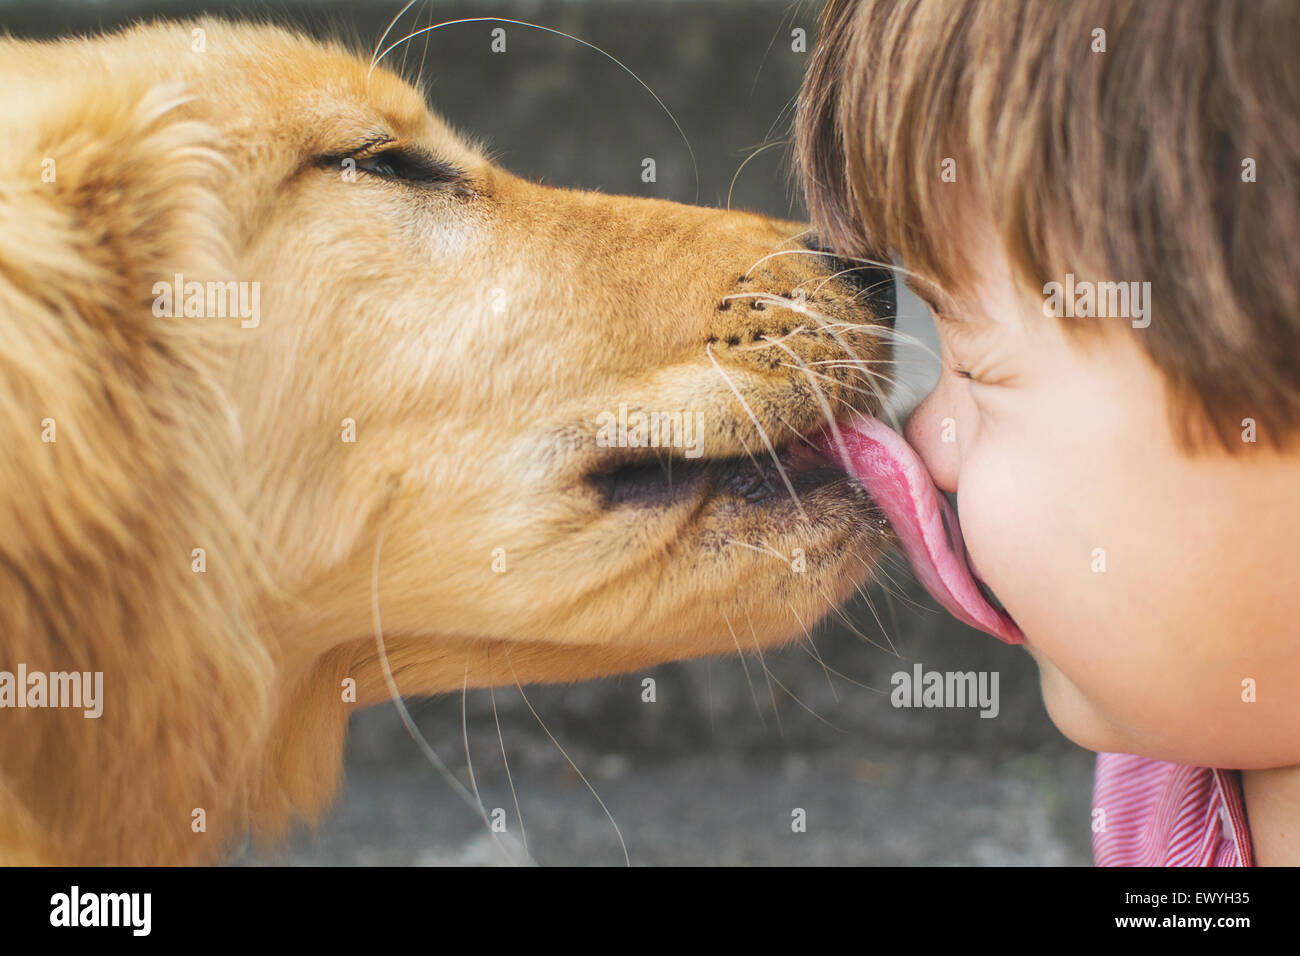 Dog licking a boy's face - Stock Image